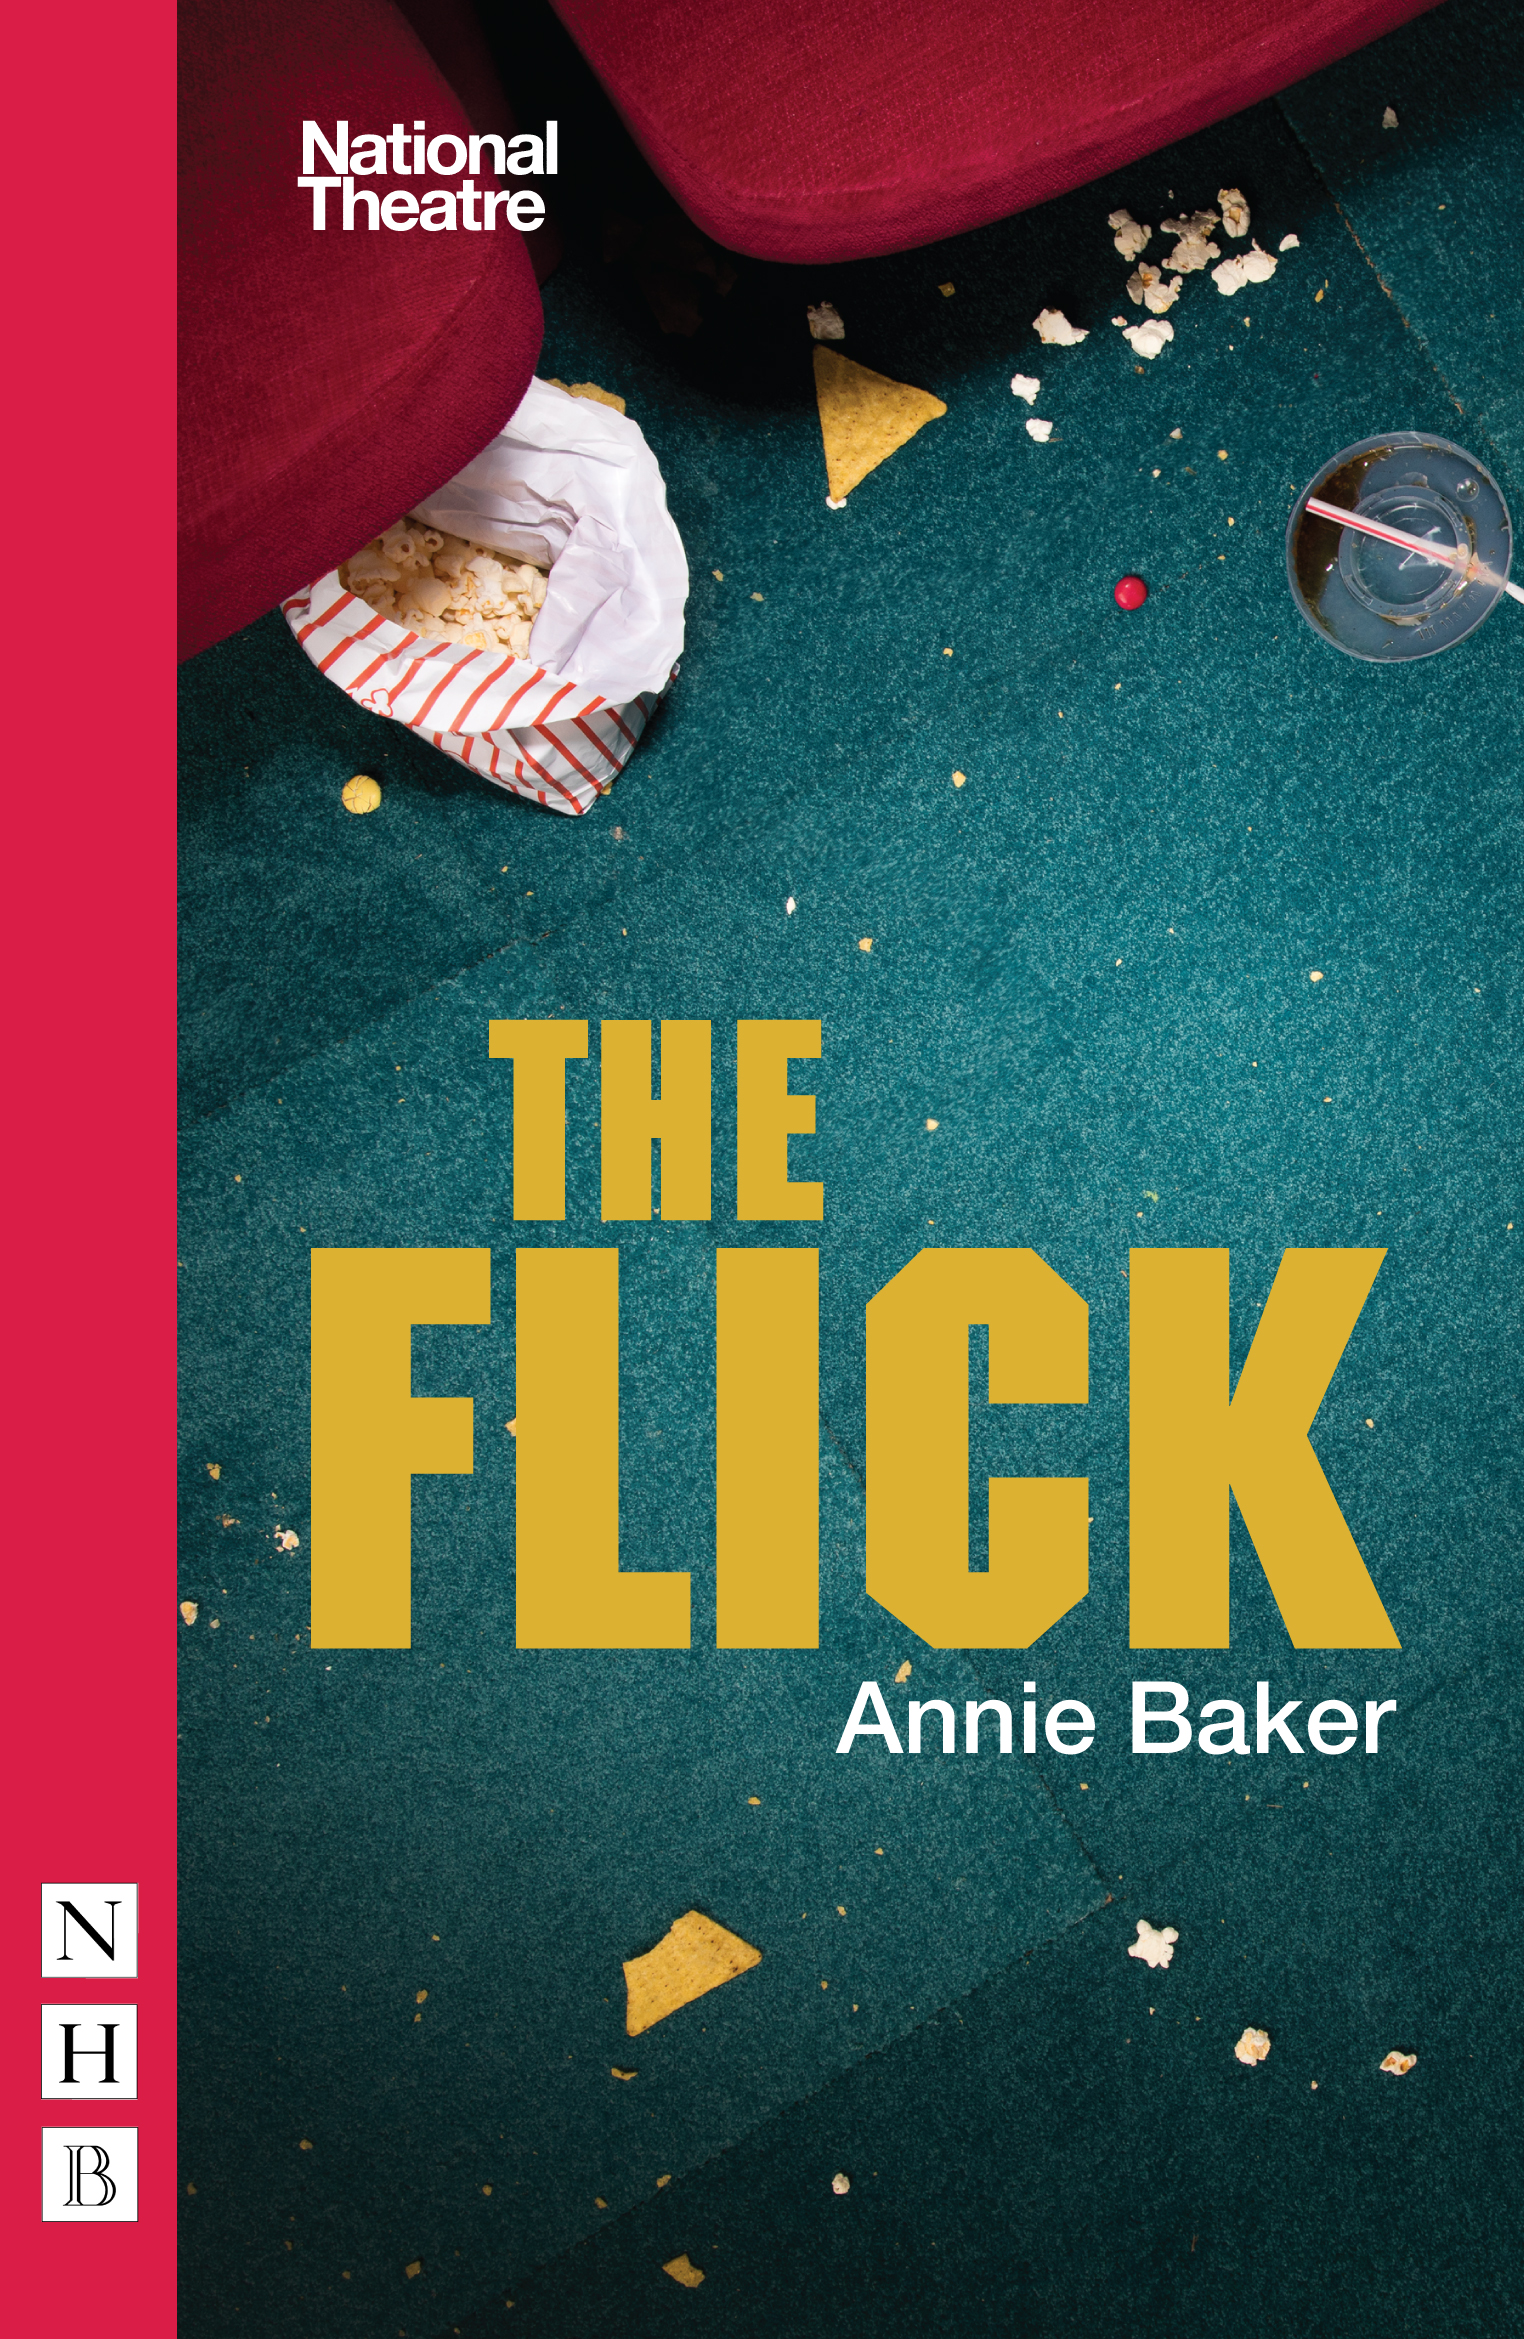 <em>The Flick</em> leads NHB nominees at WhatsOnStage Awards